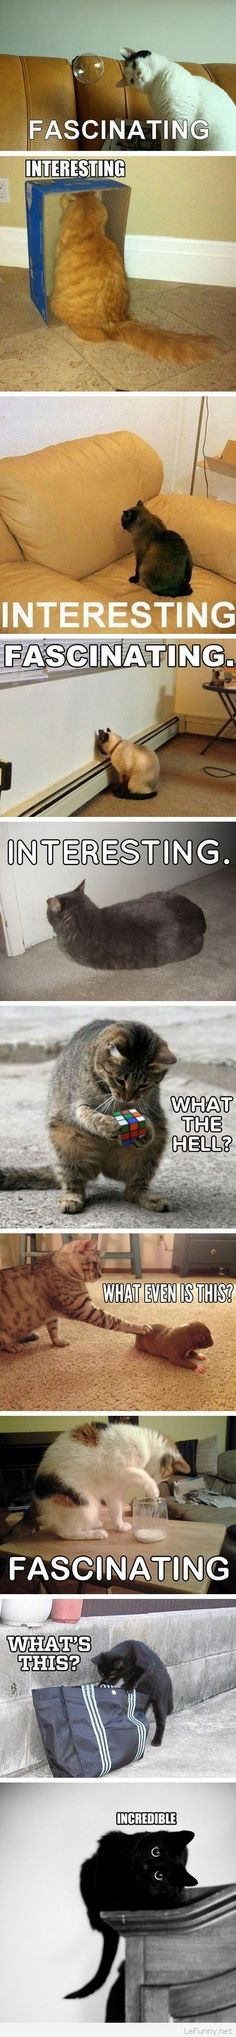 Funny interesting cats pictures   Funny Pictures   Funny Quotes   Funny Jokes – Photos, Images, Pics